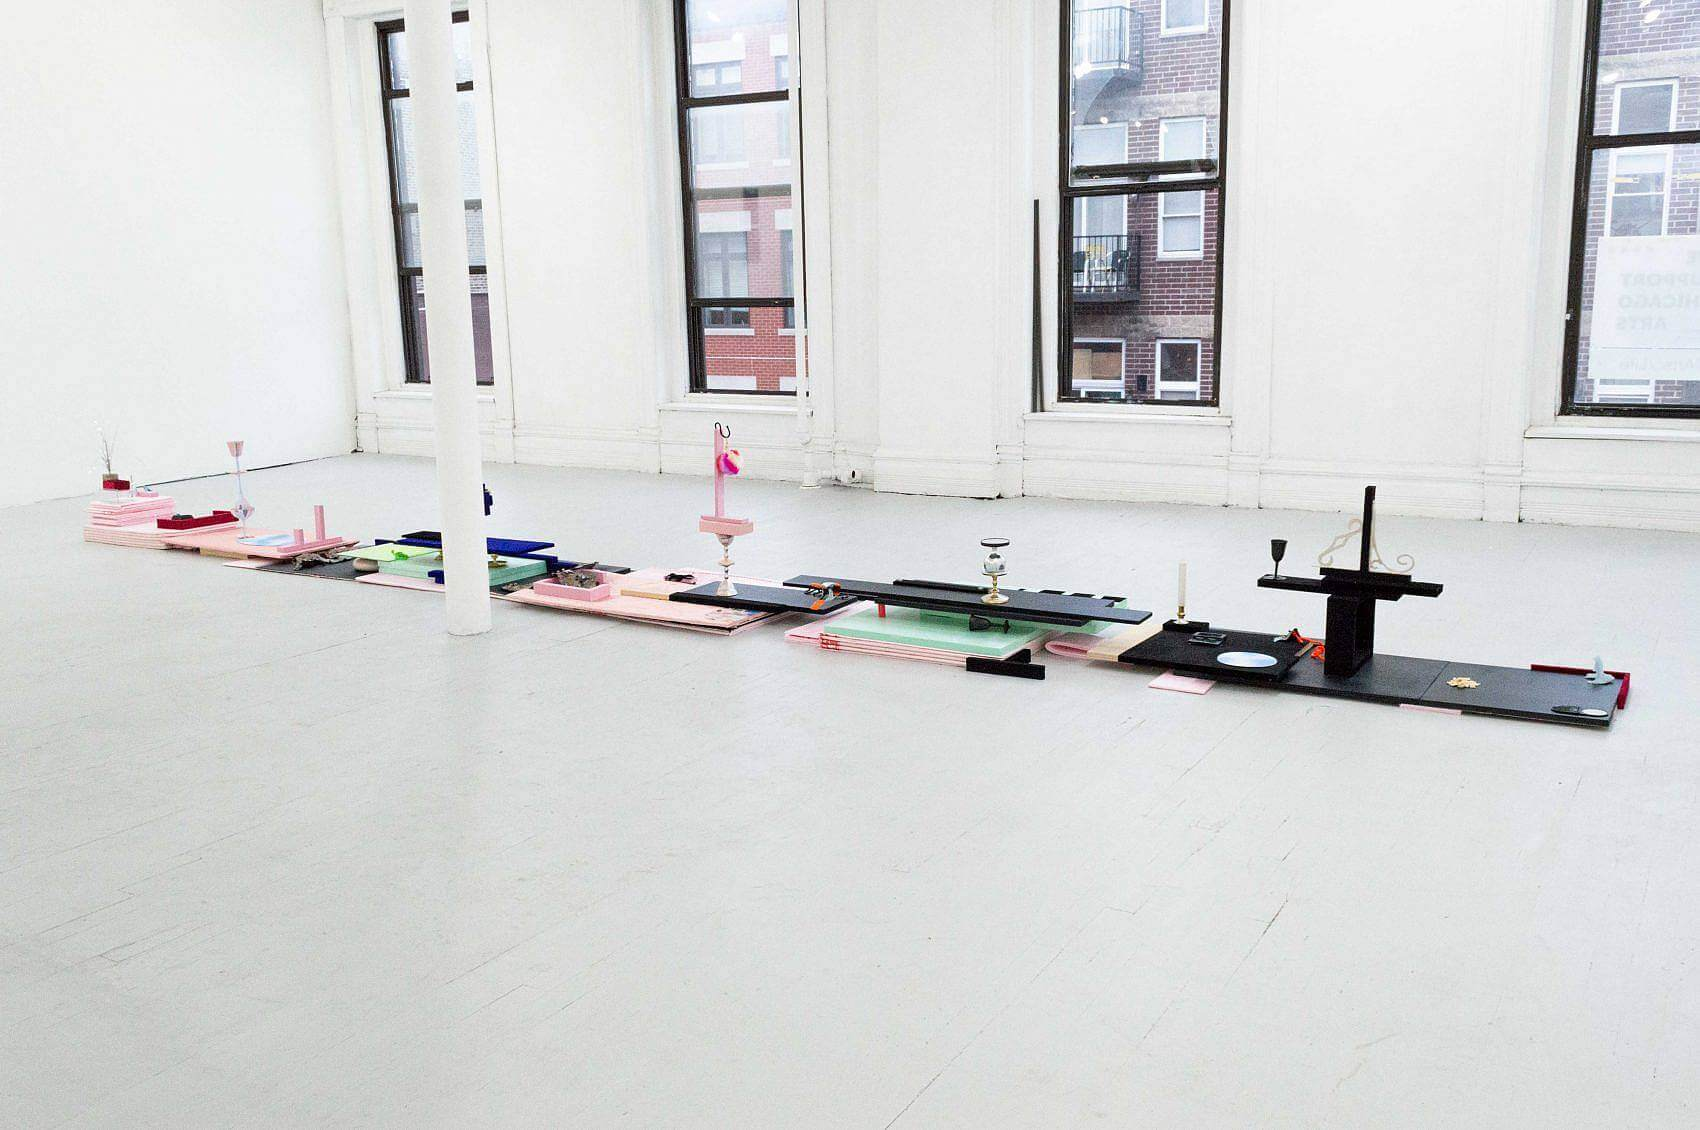 There is a long, low, and narrow sculpture sitting on the floor. There are various stacks of of light pink, green, and black insulation foam topped with various small objects like tinsel, small blue towels, compact mirrors, rhinestones, or small makeup sponges. There are also many small velvet blocks in blue and red.